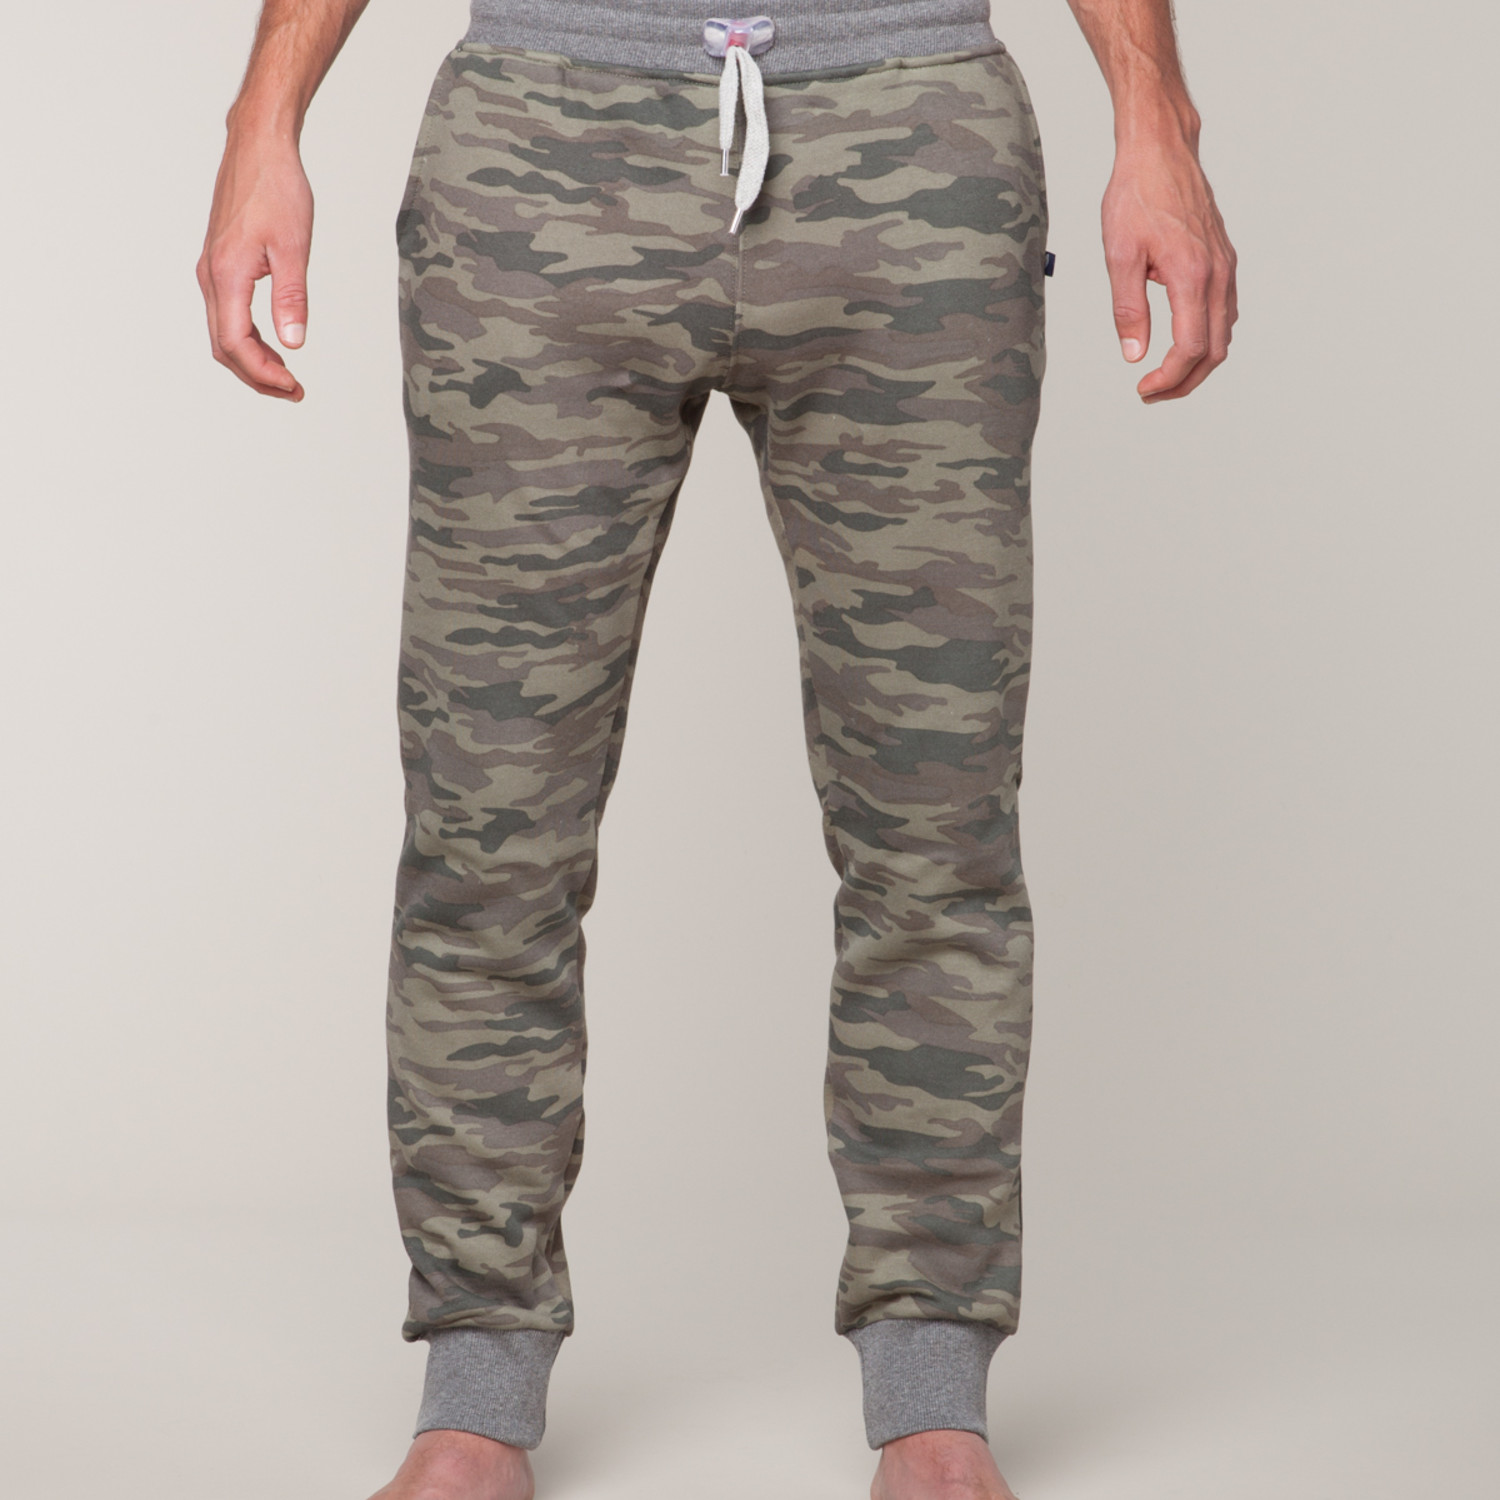 Shop for fit jogging pants online at Target. Free shipping on purchases over $35 and save 5% every day with your Target REDcard.